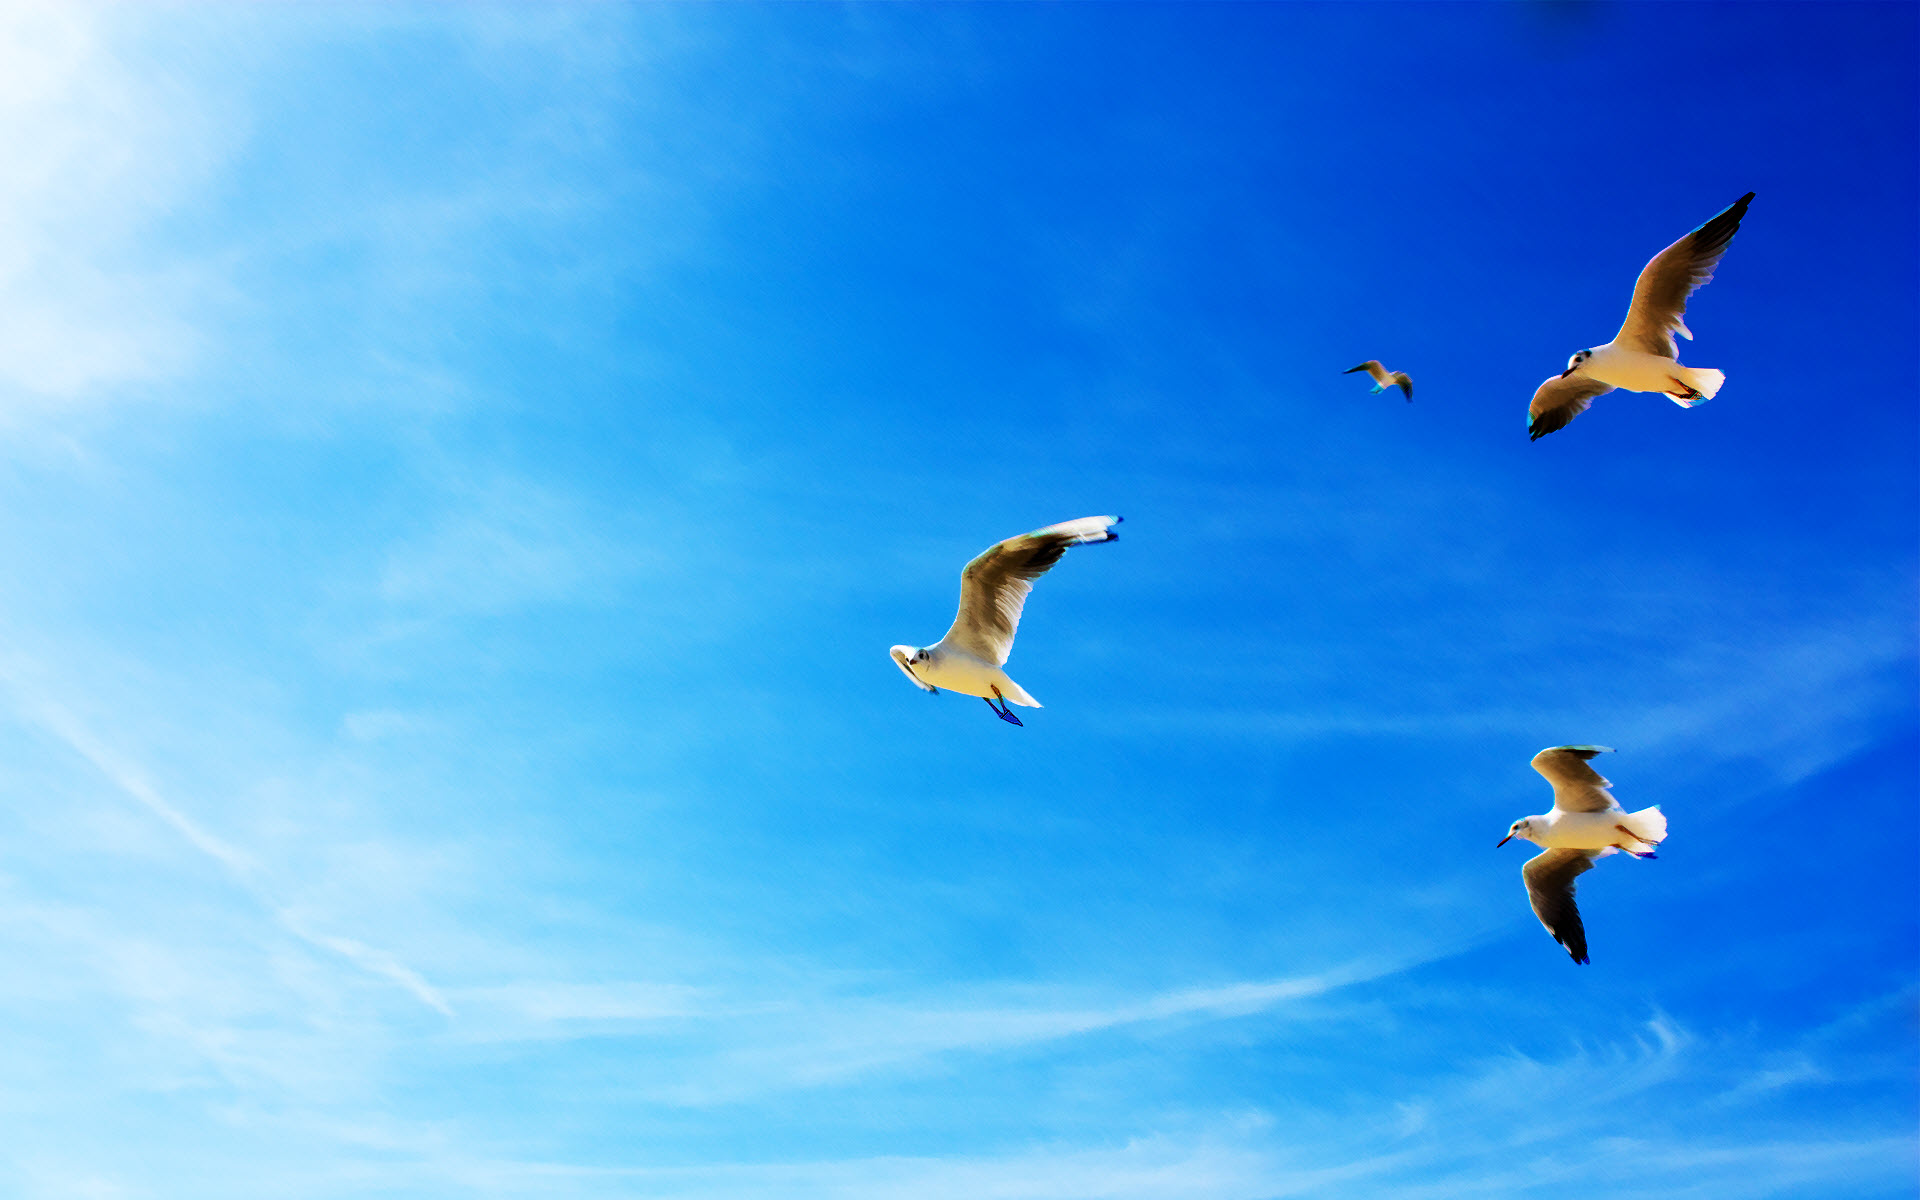 Seagulls in Flight Wallpapers HD Wallpapers 1920x1200